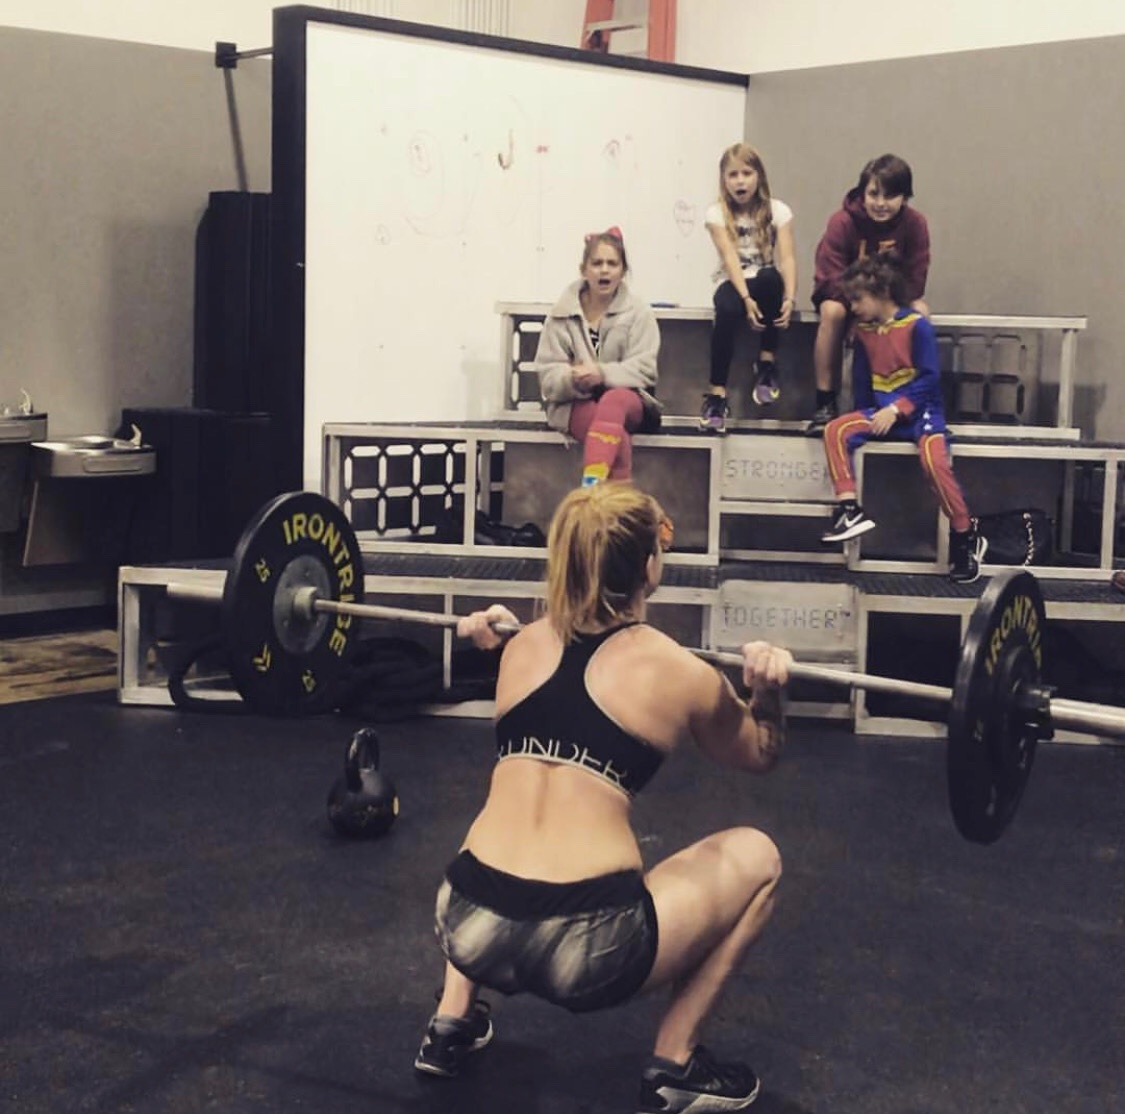 Arsenault's children cheer her on as she workout at Irontribe in Tuscaloosa.